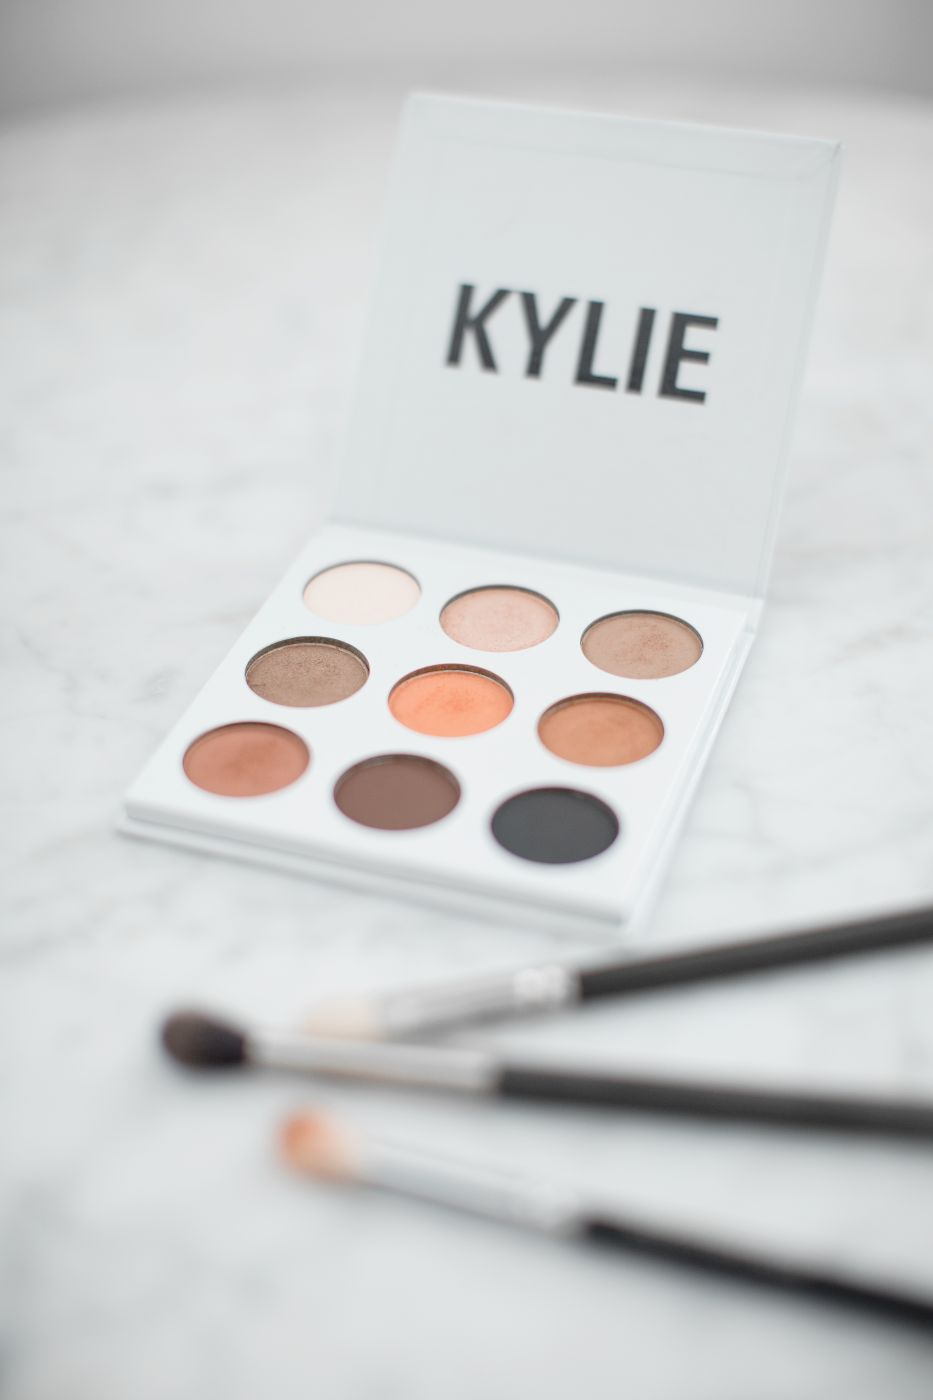 lily-pebbles-kylie-cosmetics-eye-shadow-palette-october-2016-3